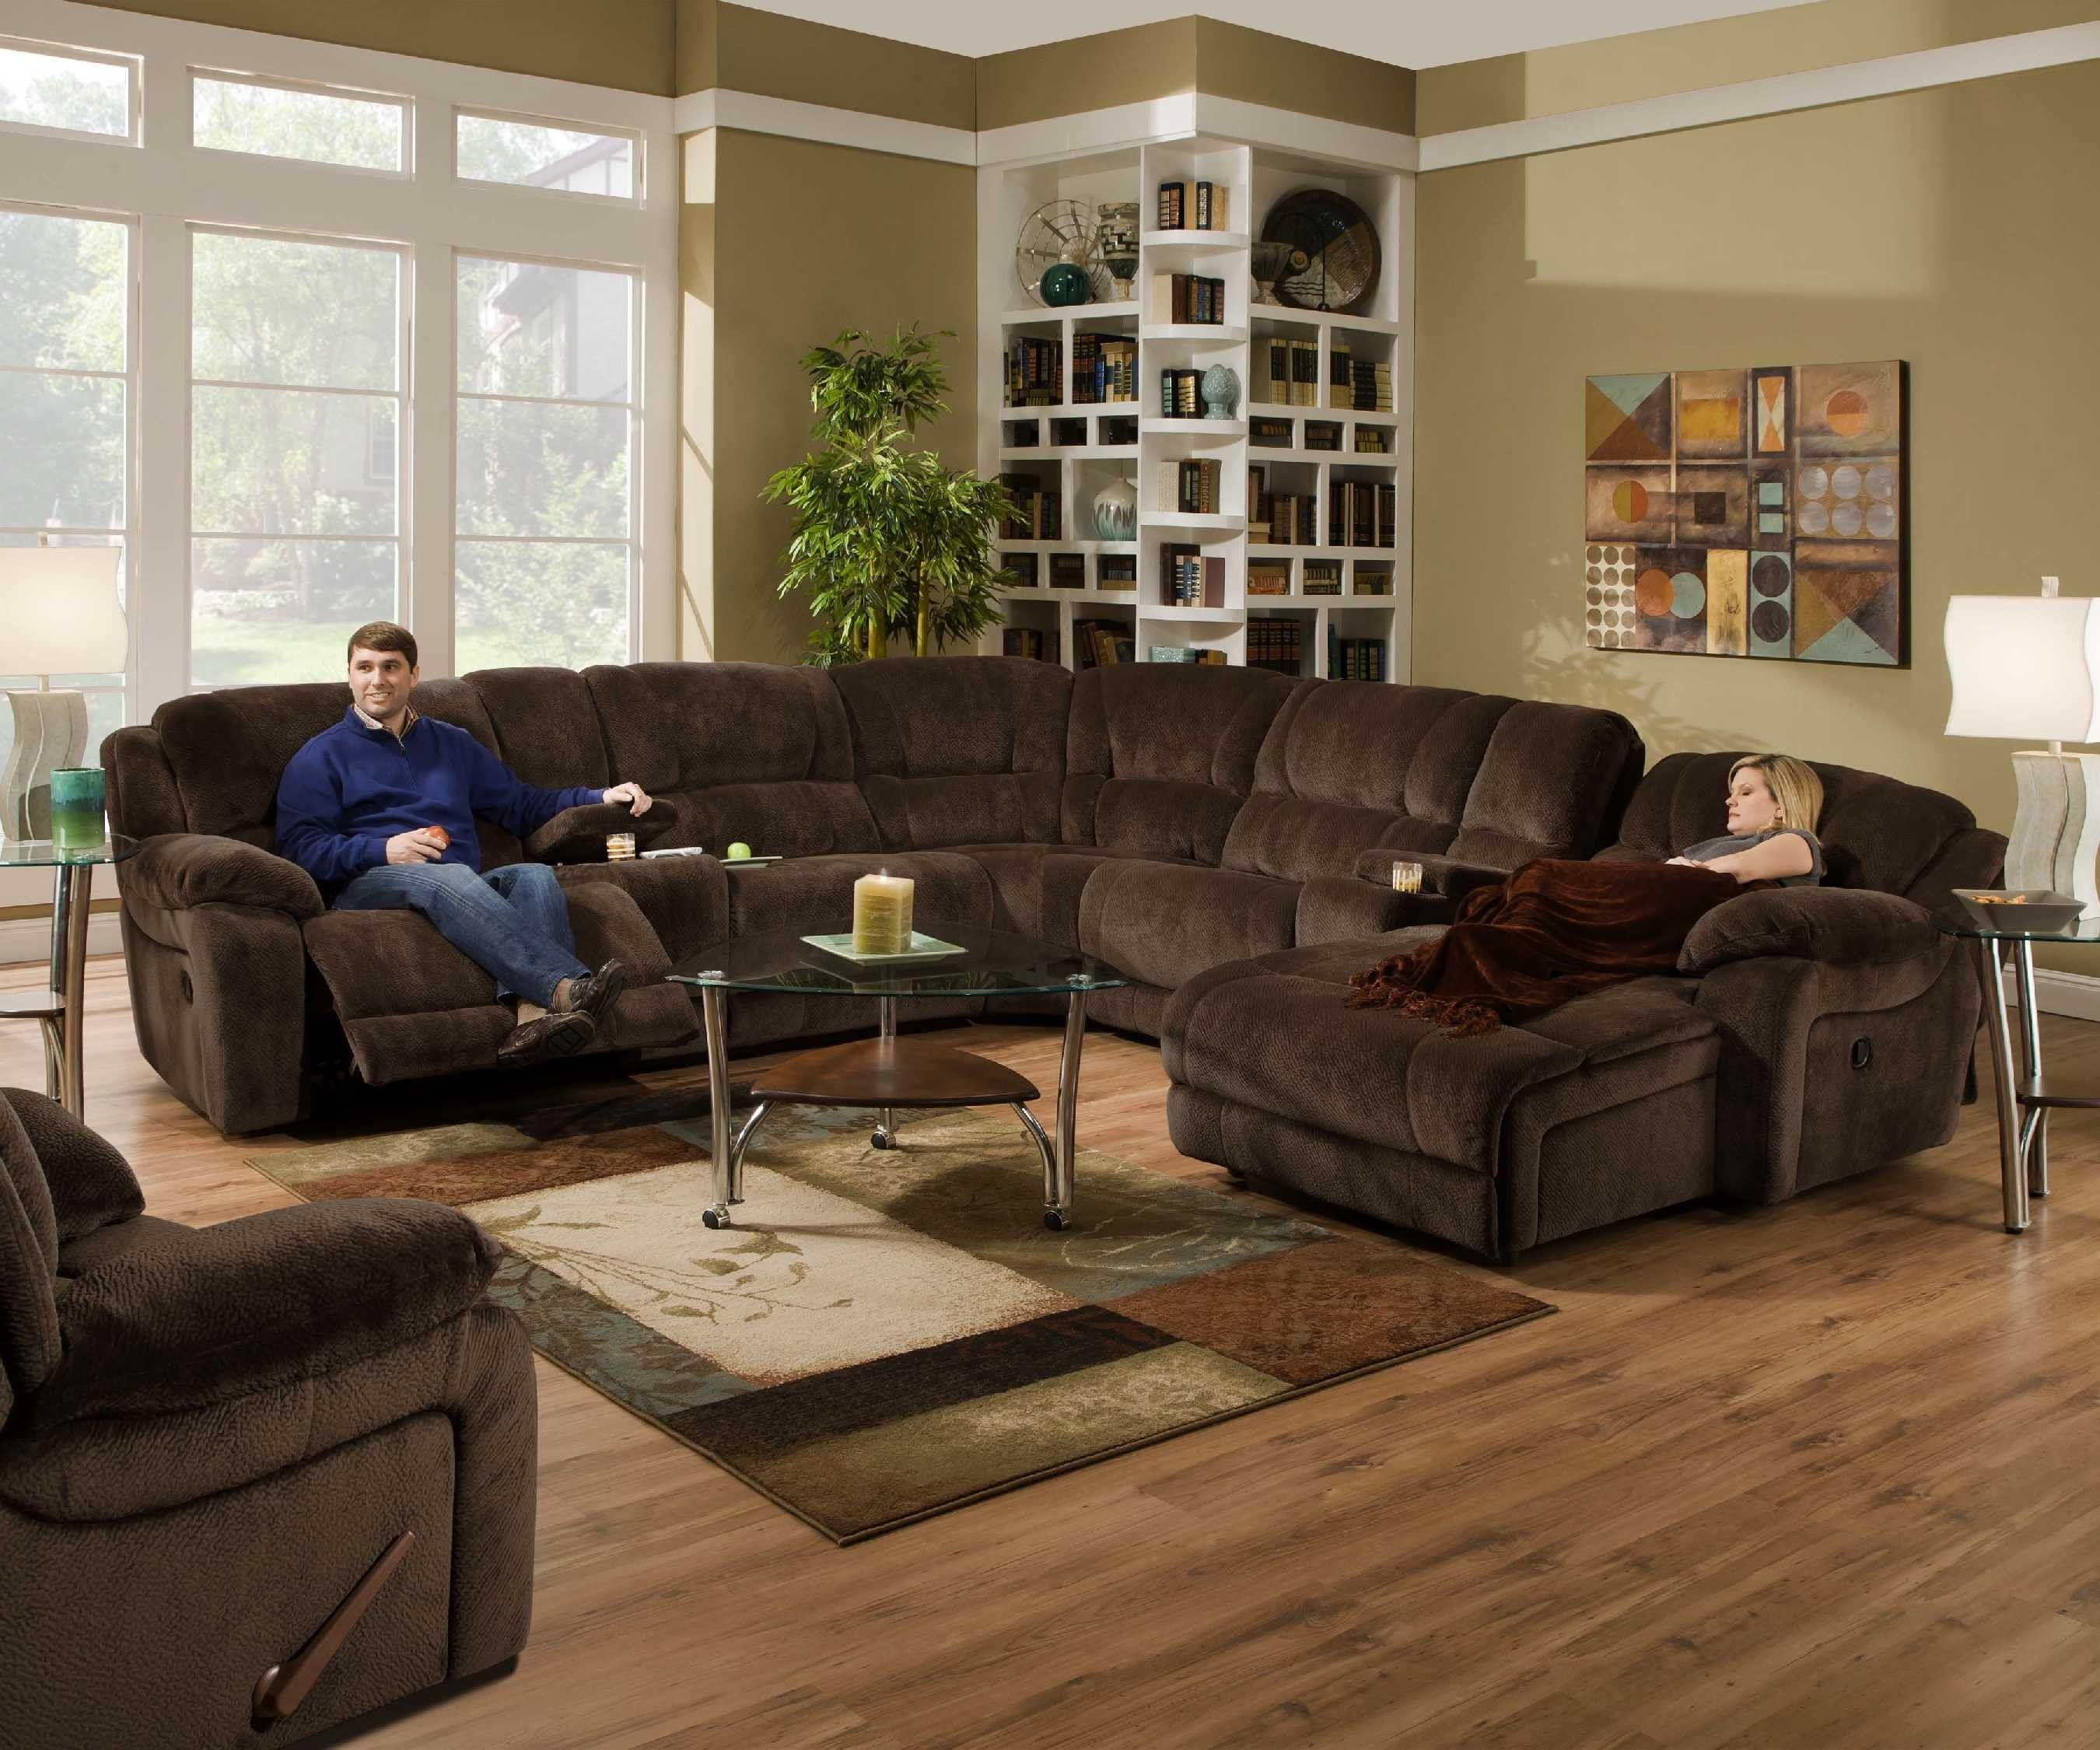 4 Piece Recliner Sectional Sofa Istikbal Max Sleeper Simmons Upholstery Champ Reclining